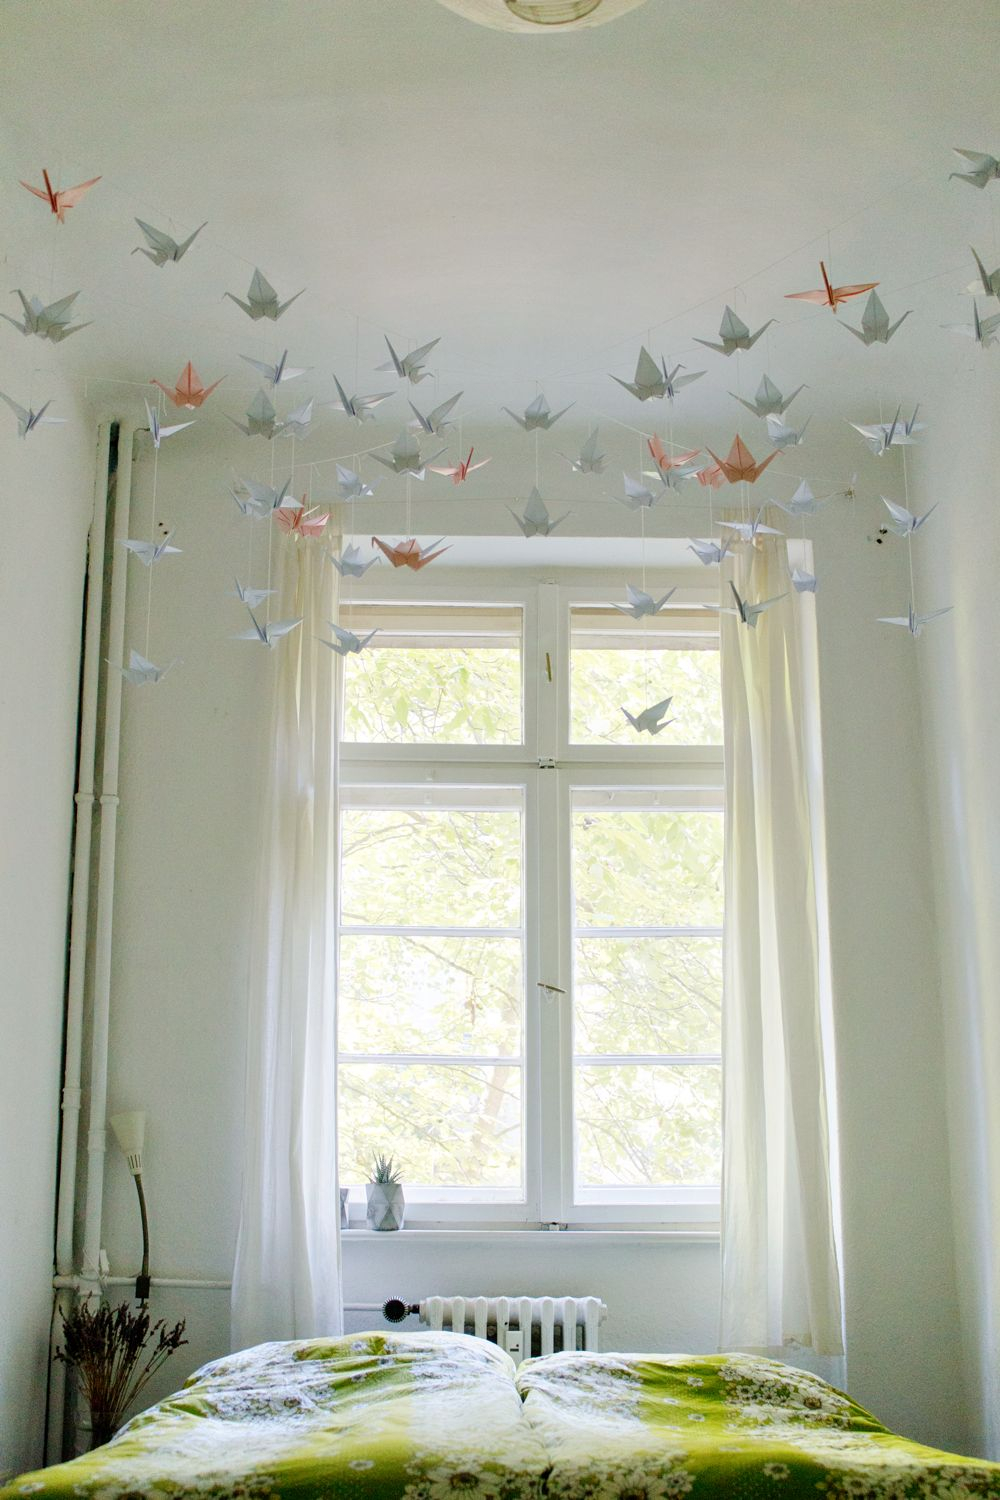 Origami Decoration Bedroom Diy In 2018 Origami Mobile Pinterest Decor Diy And Ceiling Decor